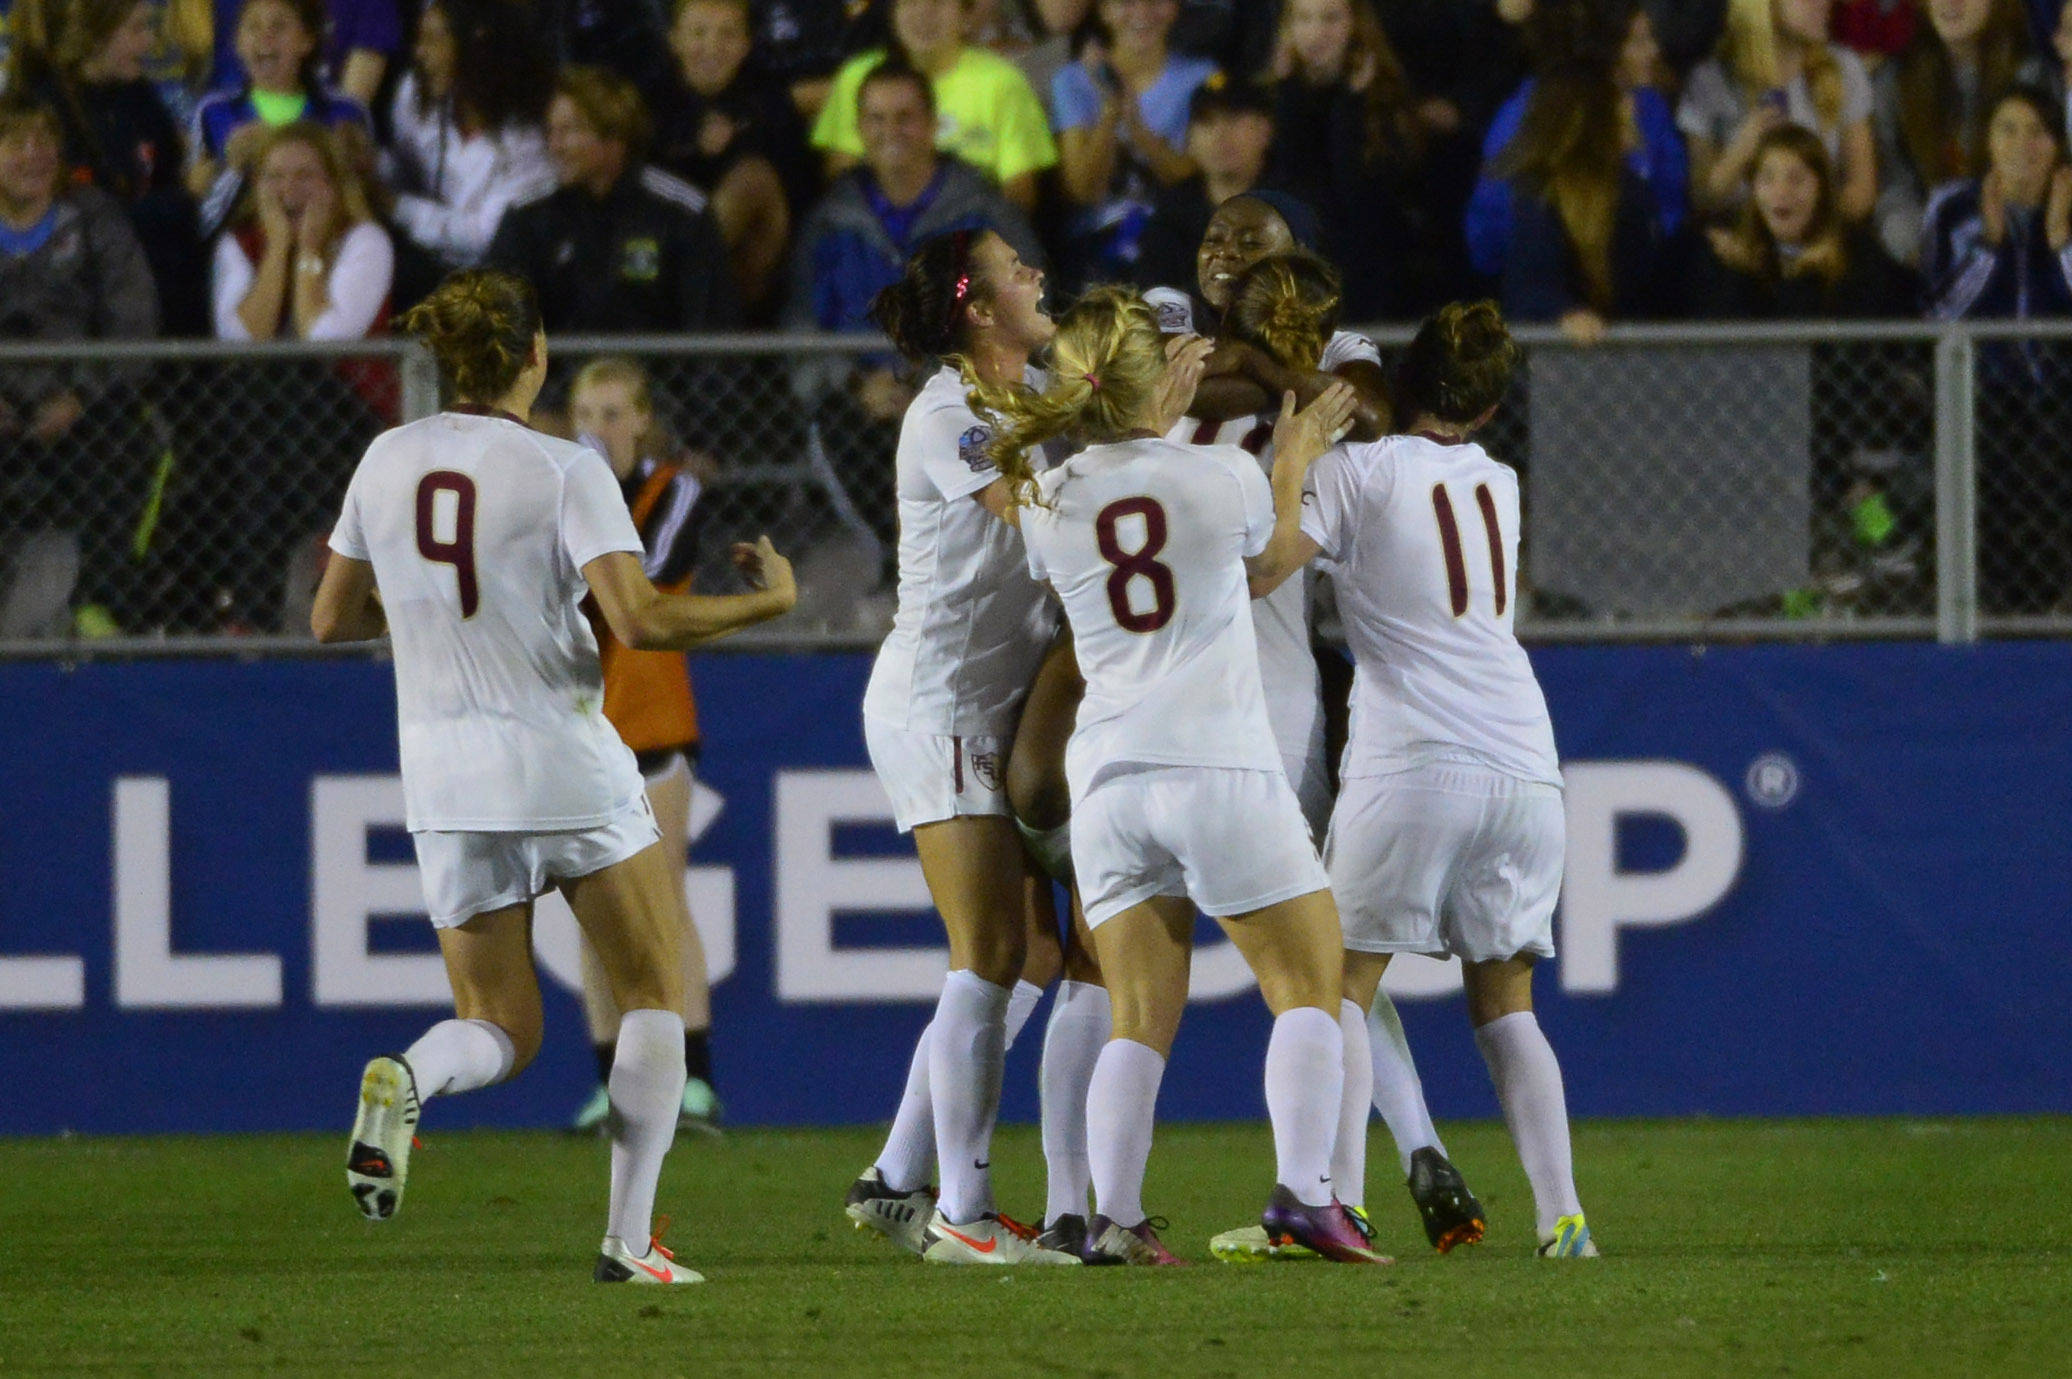 Dec 6, 2013; Cary, NC, USA; Florida State Seminoles defender Kassey Kallman (9) and defender Carson Pickett (16) and midfielder Michaela Hahn (8) and midfielder Jamia Fields (4) and defender Kristin Grubka (13) and forward Isabella Schmid (11) celebrate after Fields second goal in the second half. The Seminoles defeated the Hokies 3-2 at WakeMed Soccer Park. Mandatory Credit: Bob Donnan-USA TODAY Sports